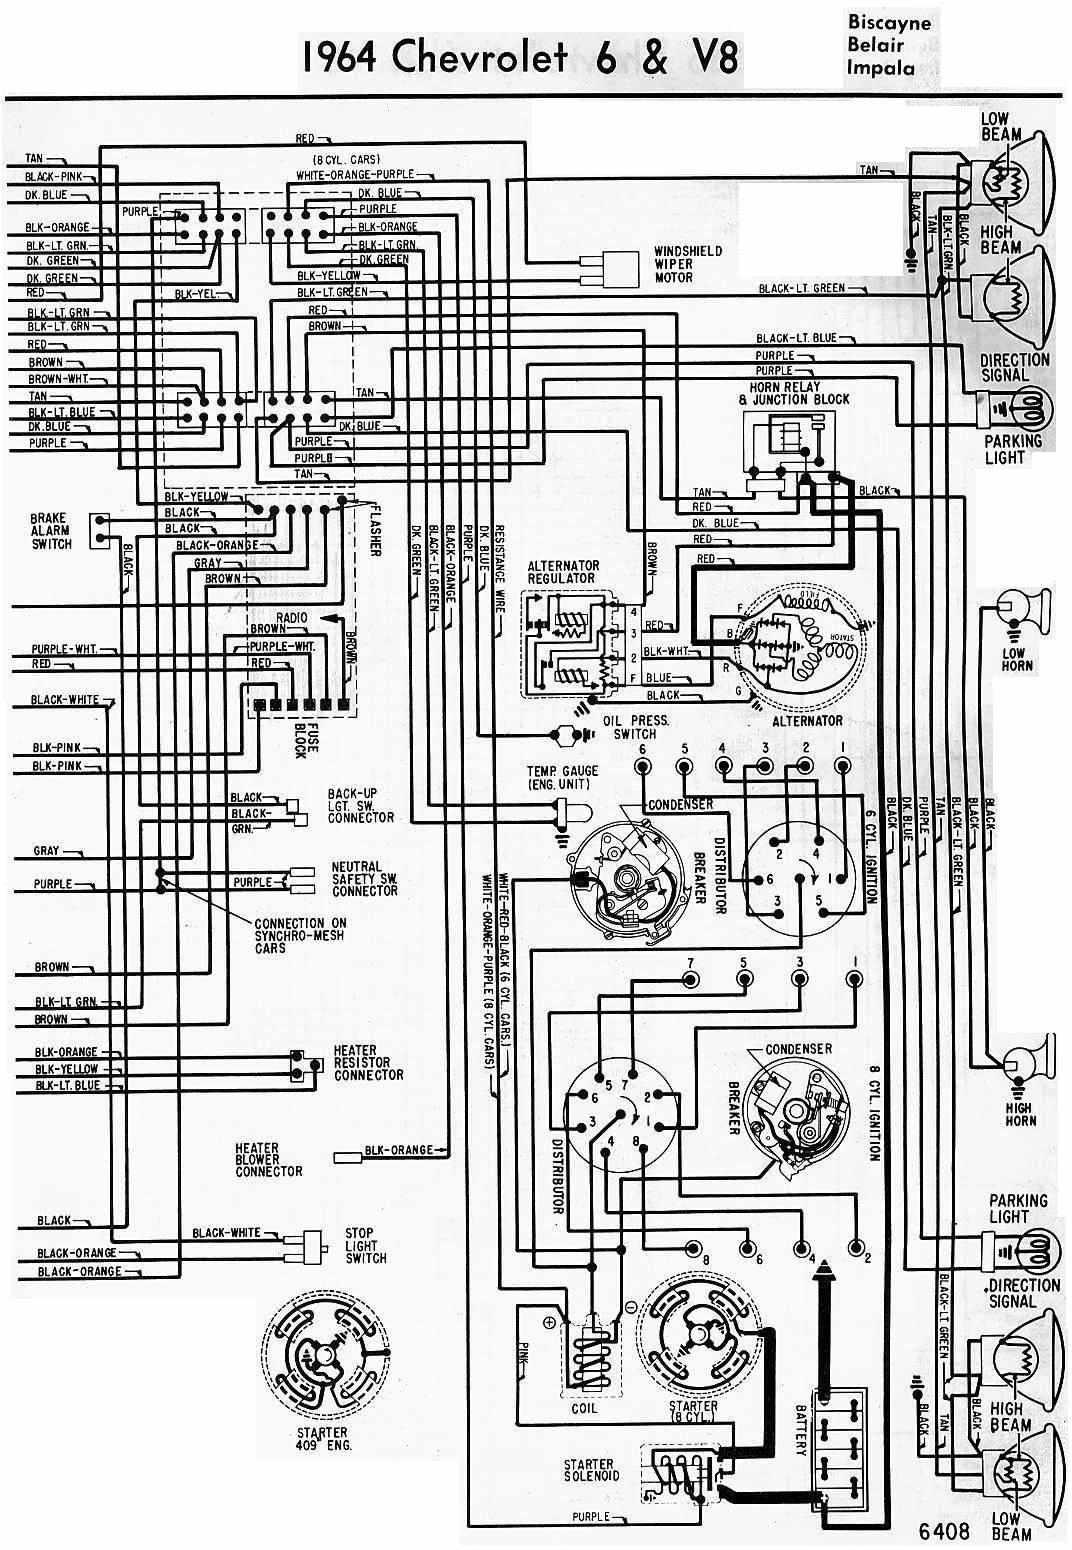 Electrical+Wiring+Diagram+Of+1964+Chevrolet+6+And+V8 1964 bel air wire diagram colors incorrect chevytalk free 1964 impala ss wiring diagram at n-0.co